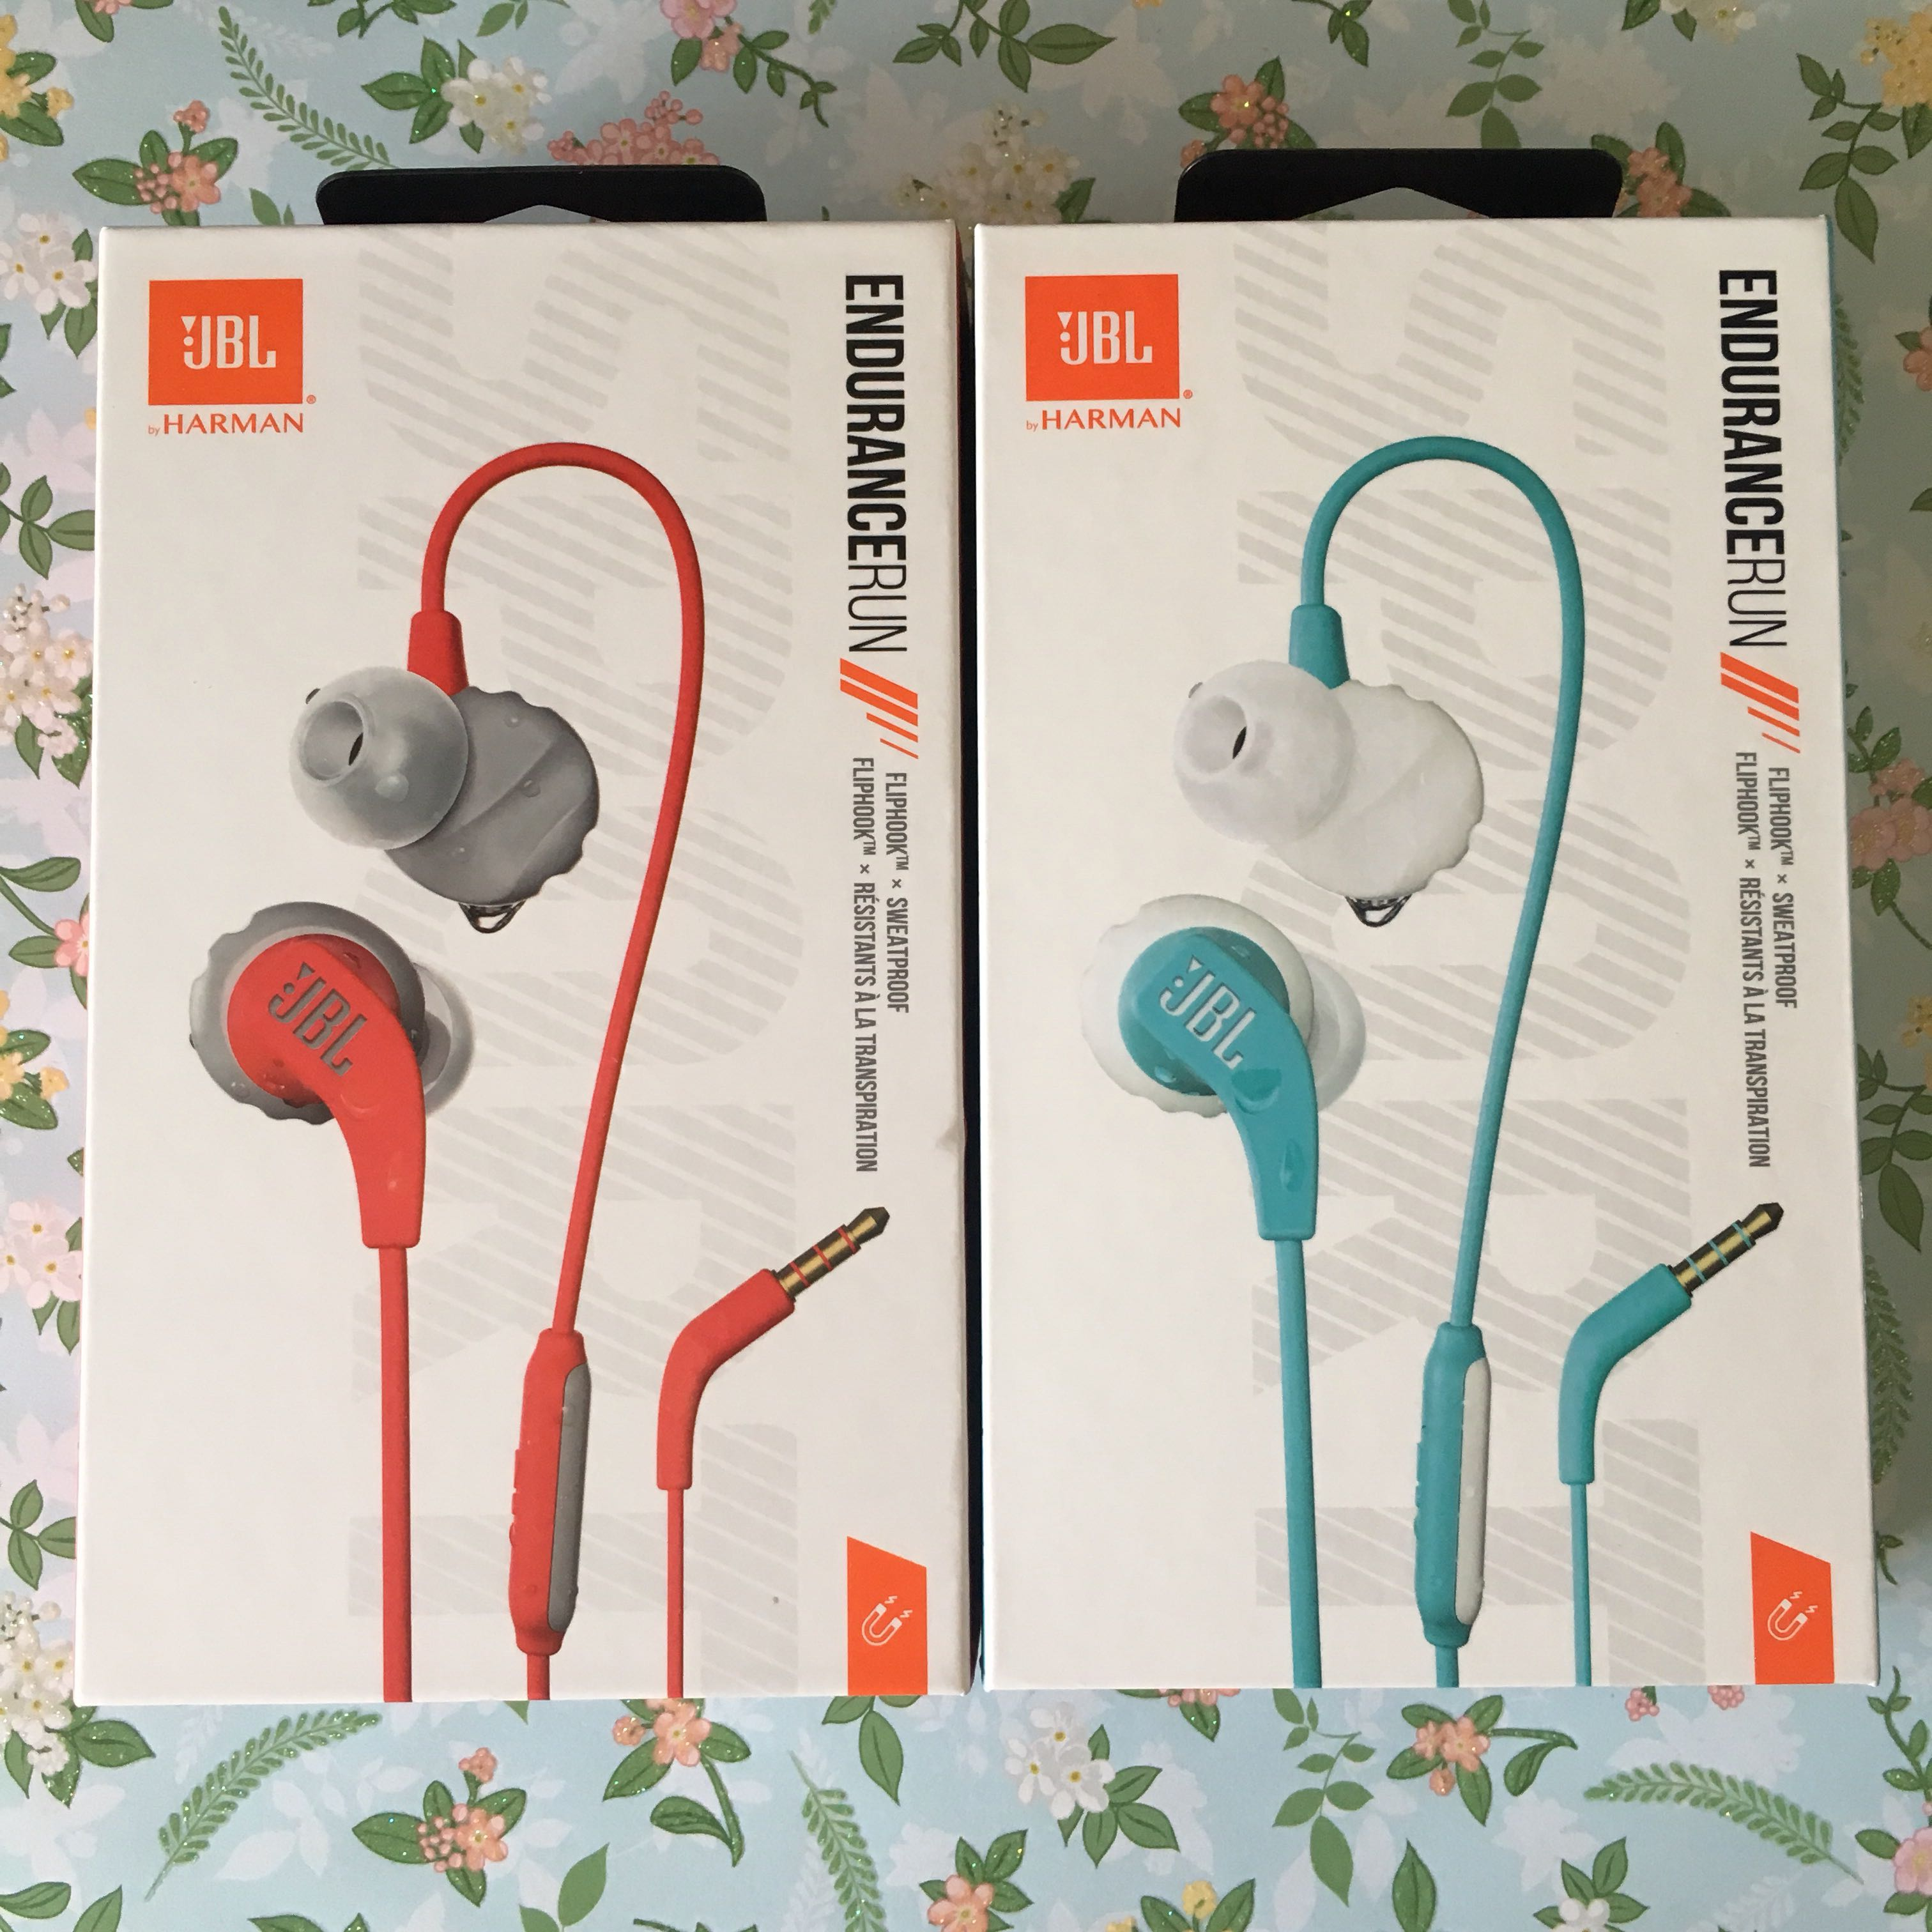 7d7622b3992 JBL Endurance RUN Sweatproof Sports In-Ear Headphones with One-Button  Remote and Microphone (Blue/Red), Electronics, Audio on Carousell